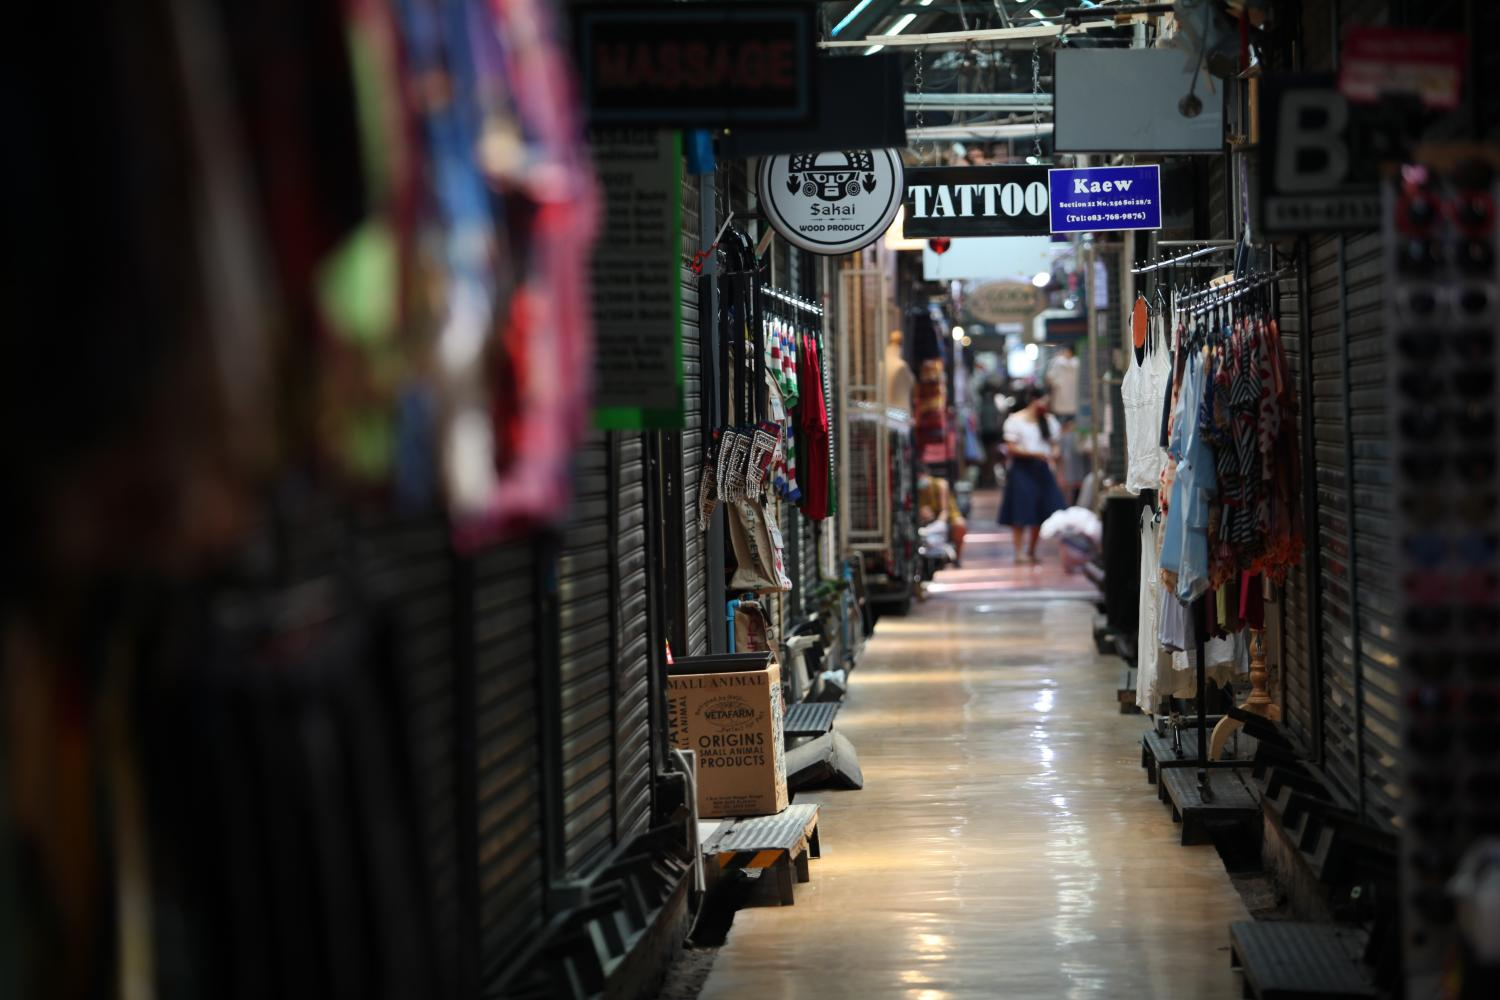 Chatuchak weekend market remains lifeless amid the ongoing outbreak. The Rao Chana savings bonds are aimed at financing projects that will rehabilitate the battered economy. (Photo by Apichart Jinakul)